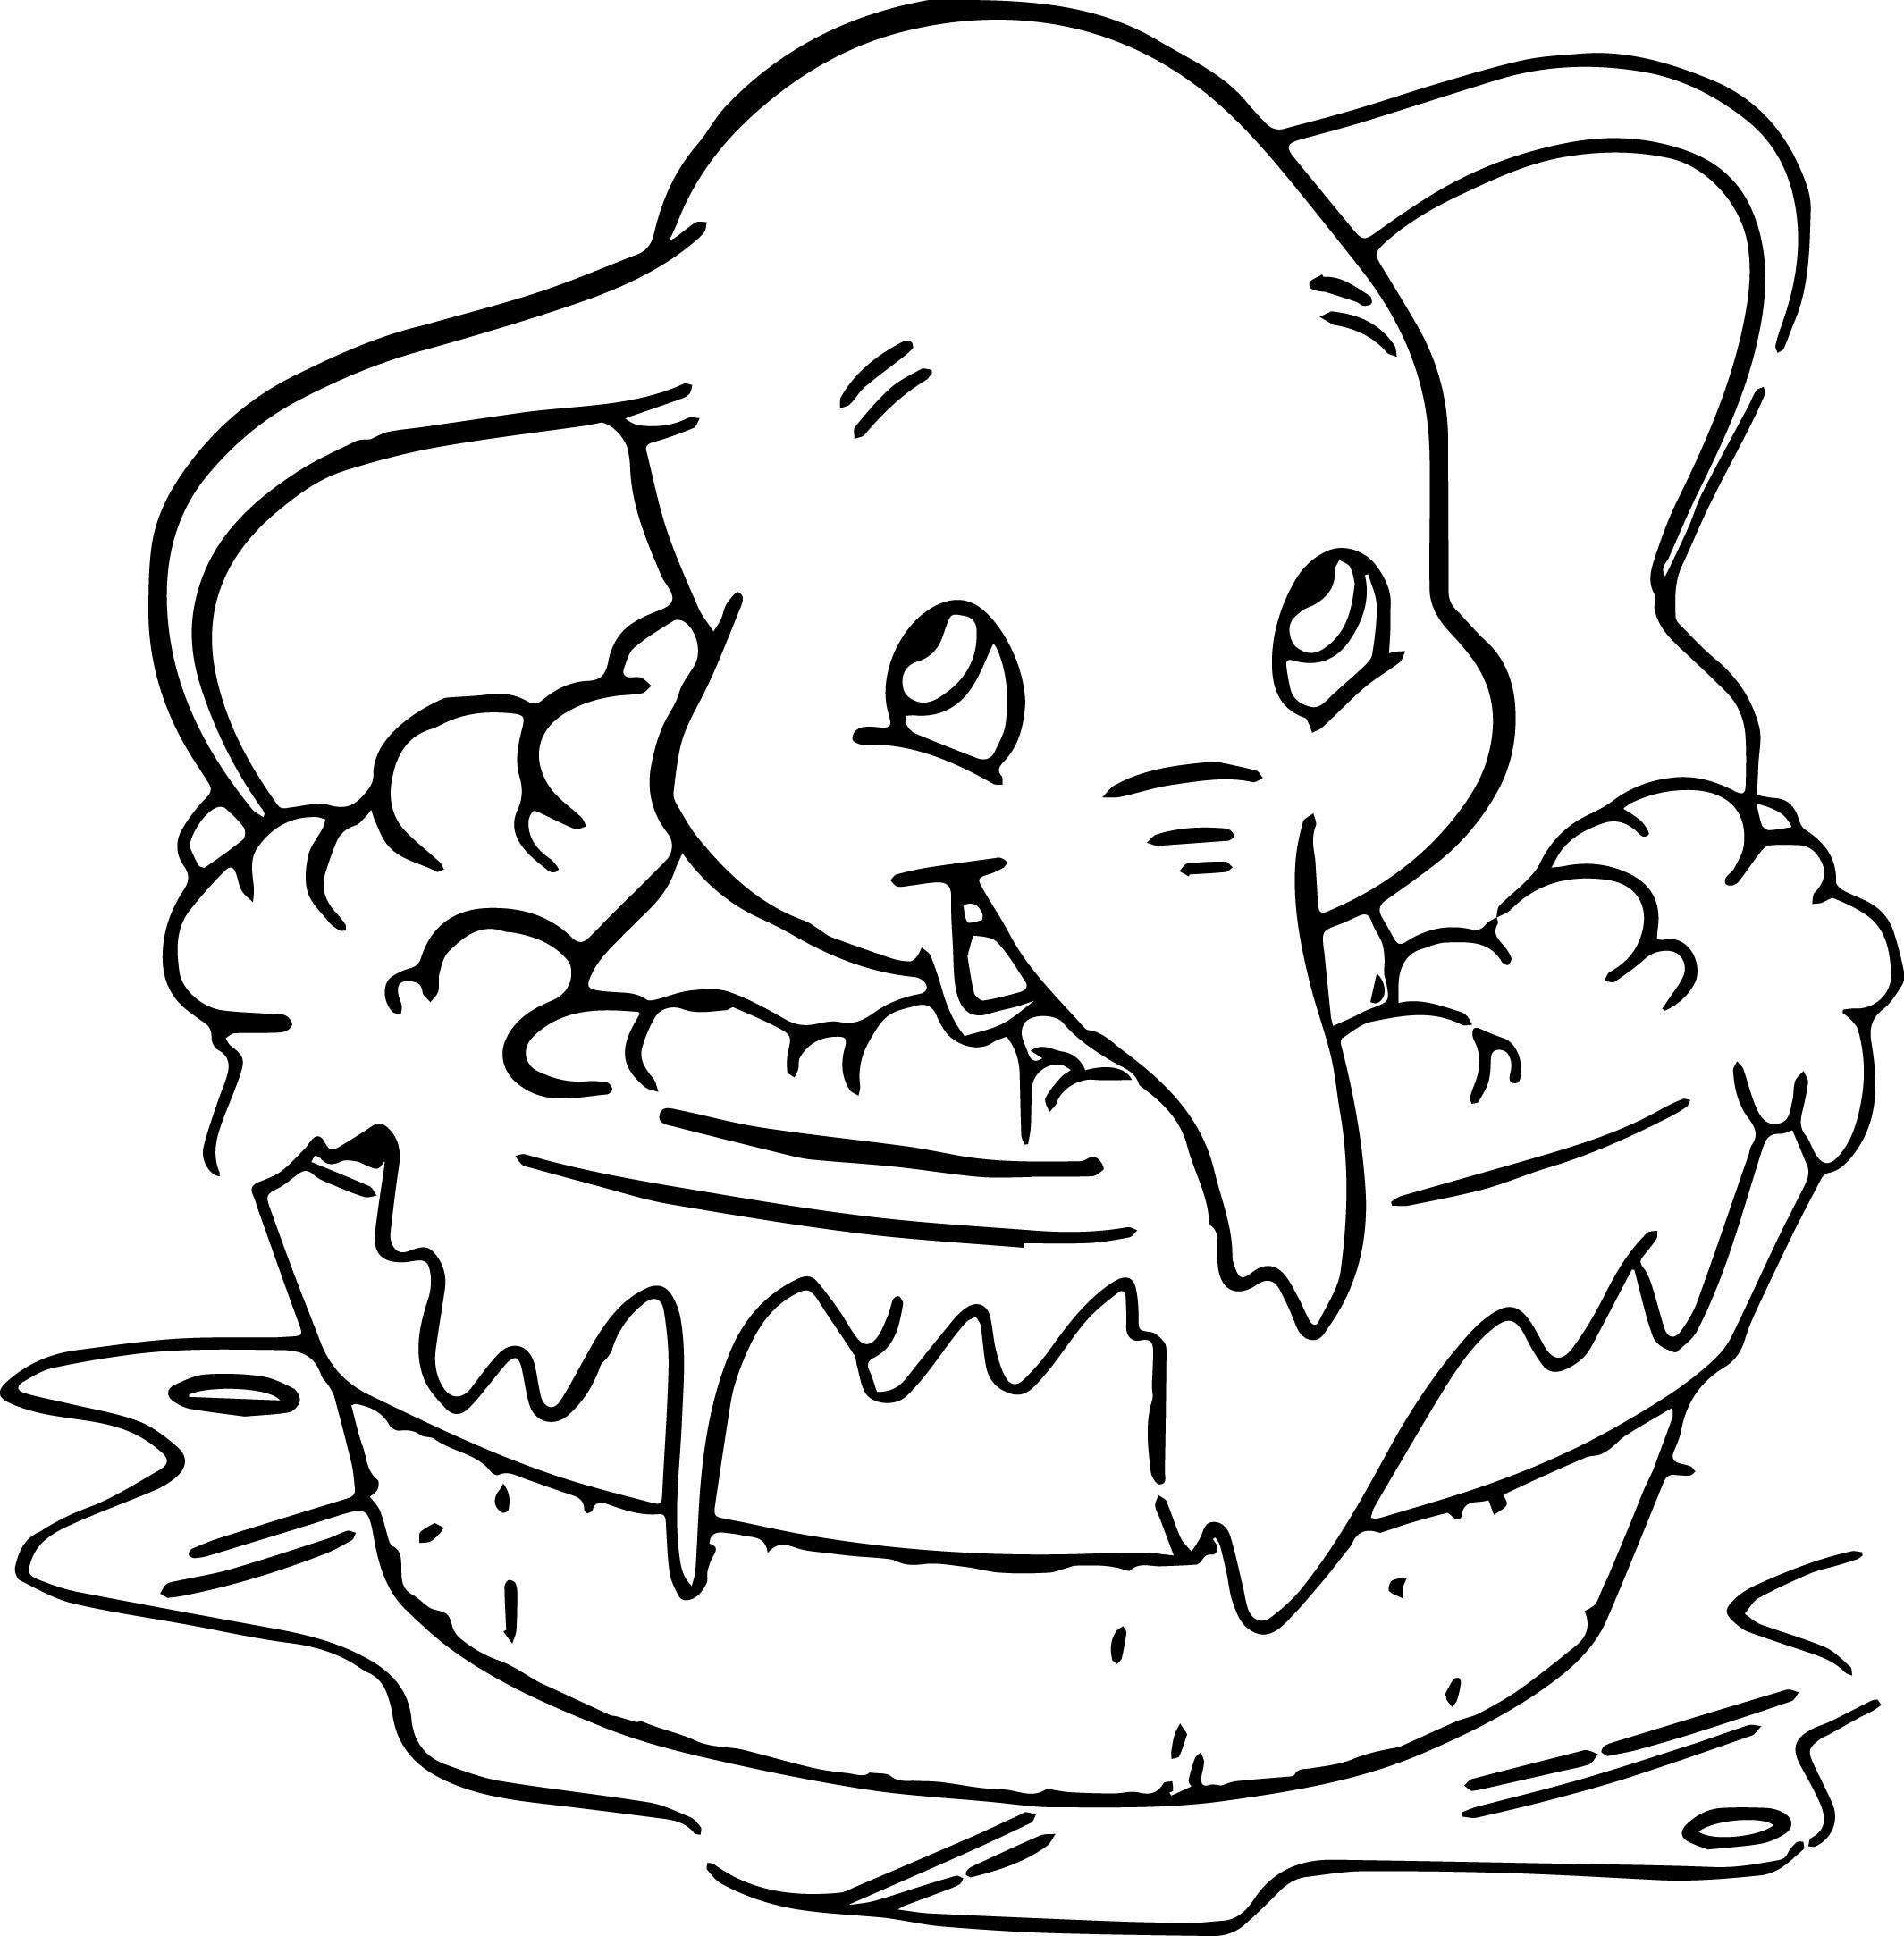 Disney dumbo elephant coloring pages penelope mae pinterest